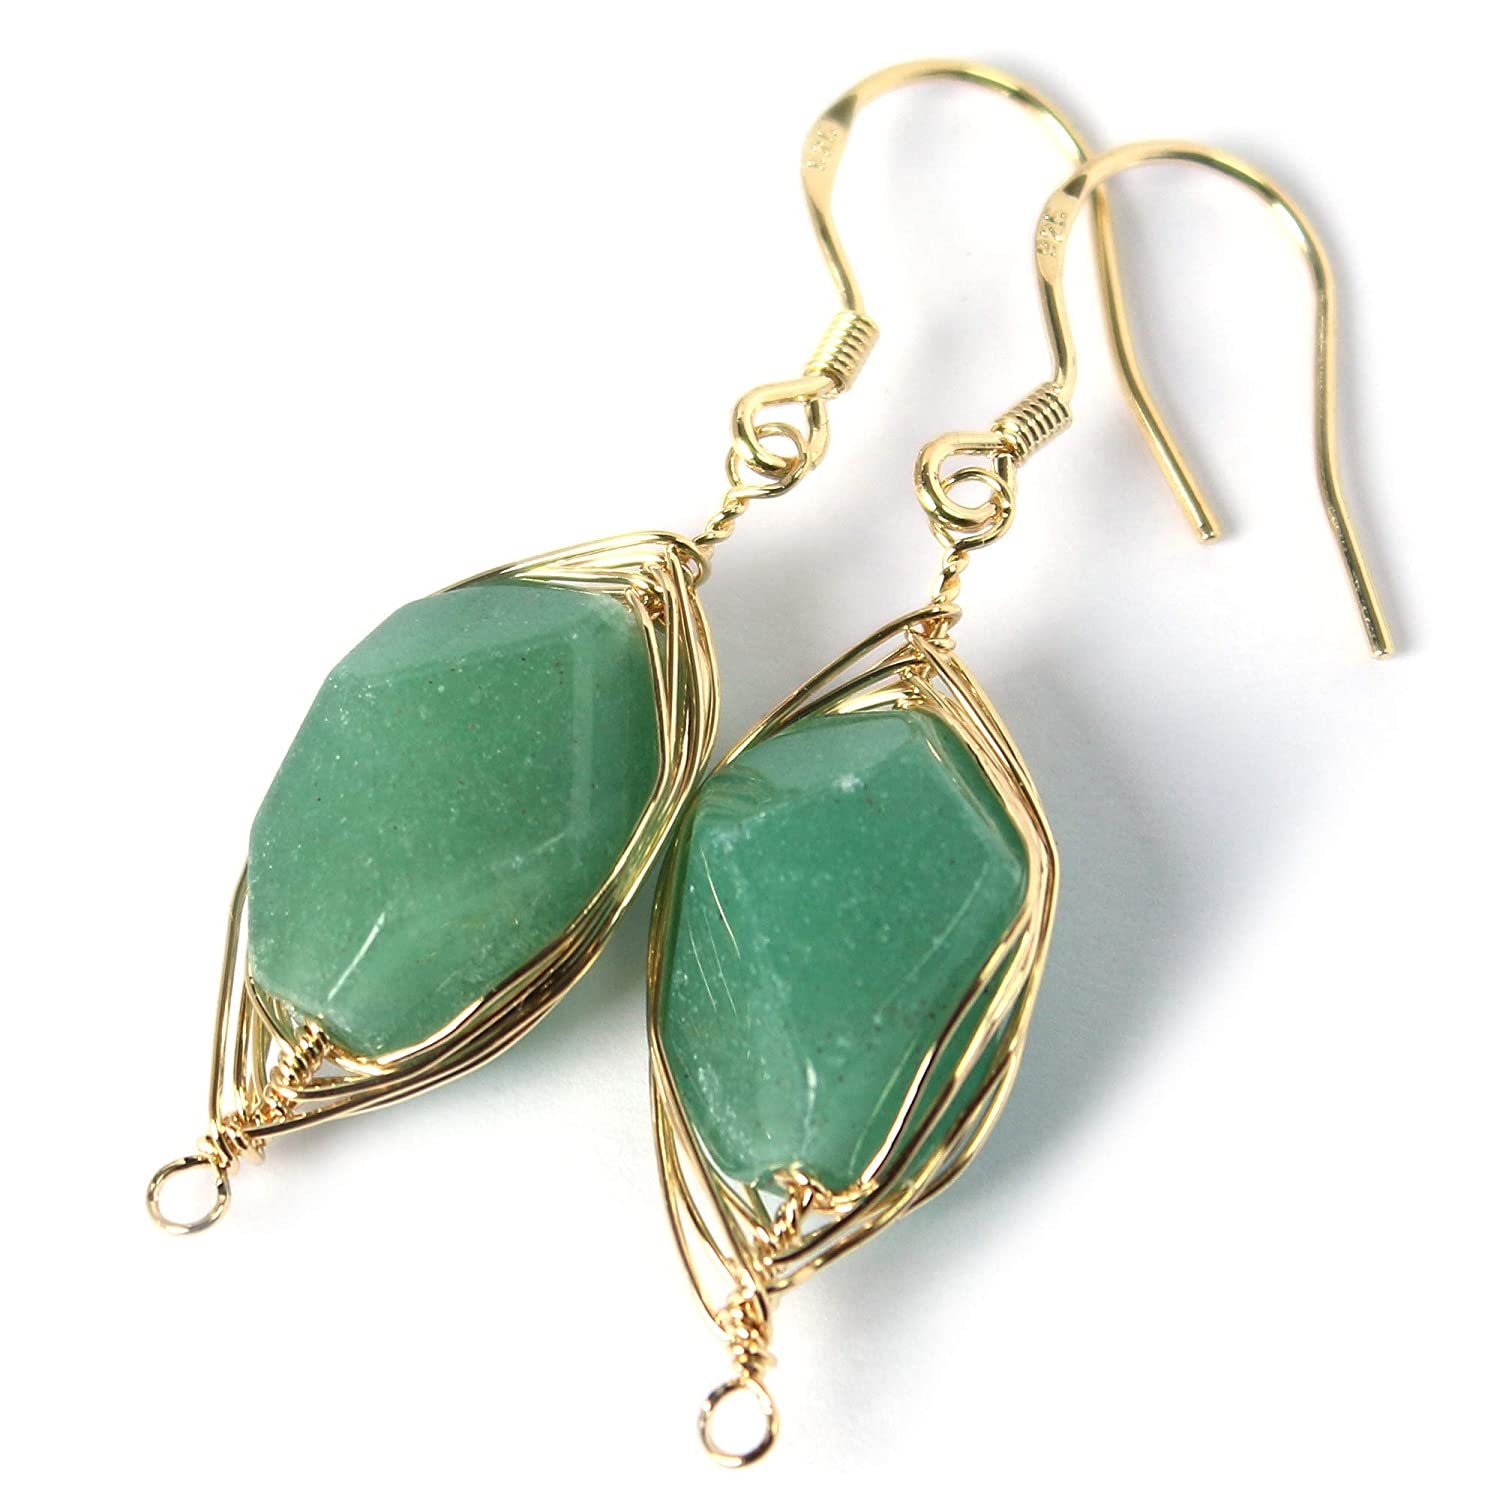 Natural Stone Wire Wrap Dangle Drop Earrings Gold Plated 925 Sterling Silver Hook//Aventurine Raw Cut